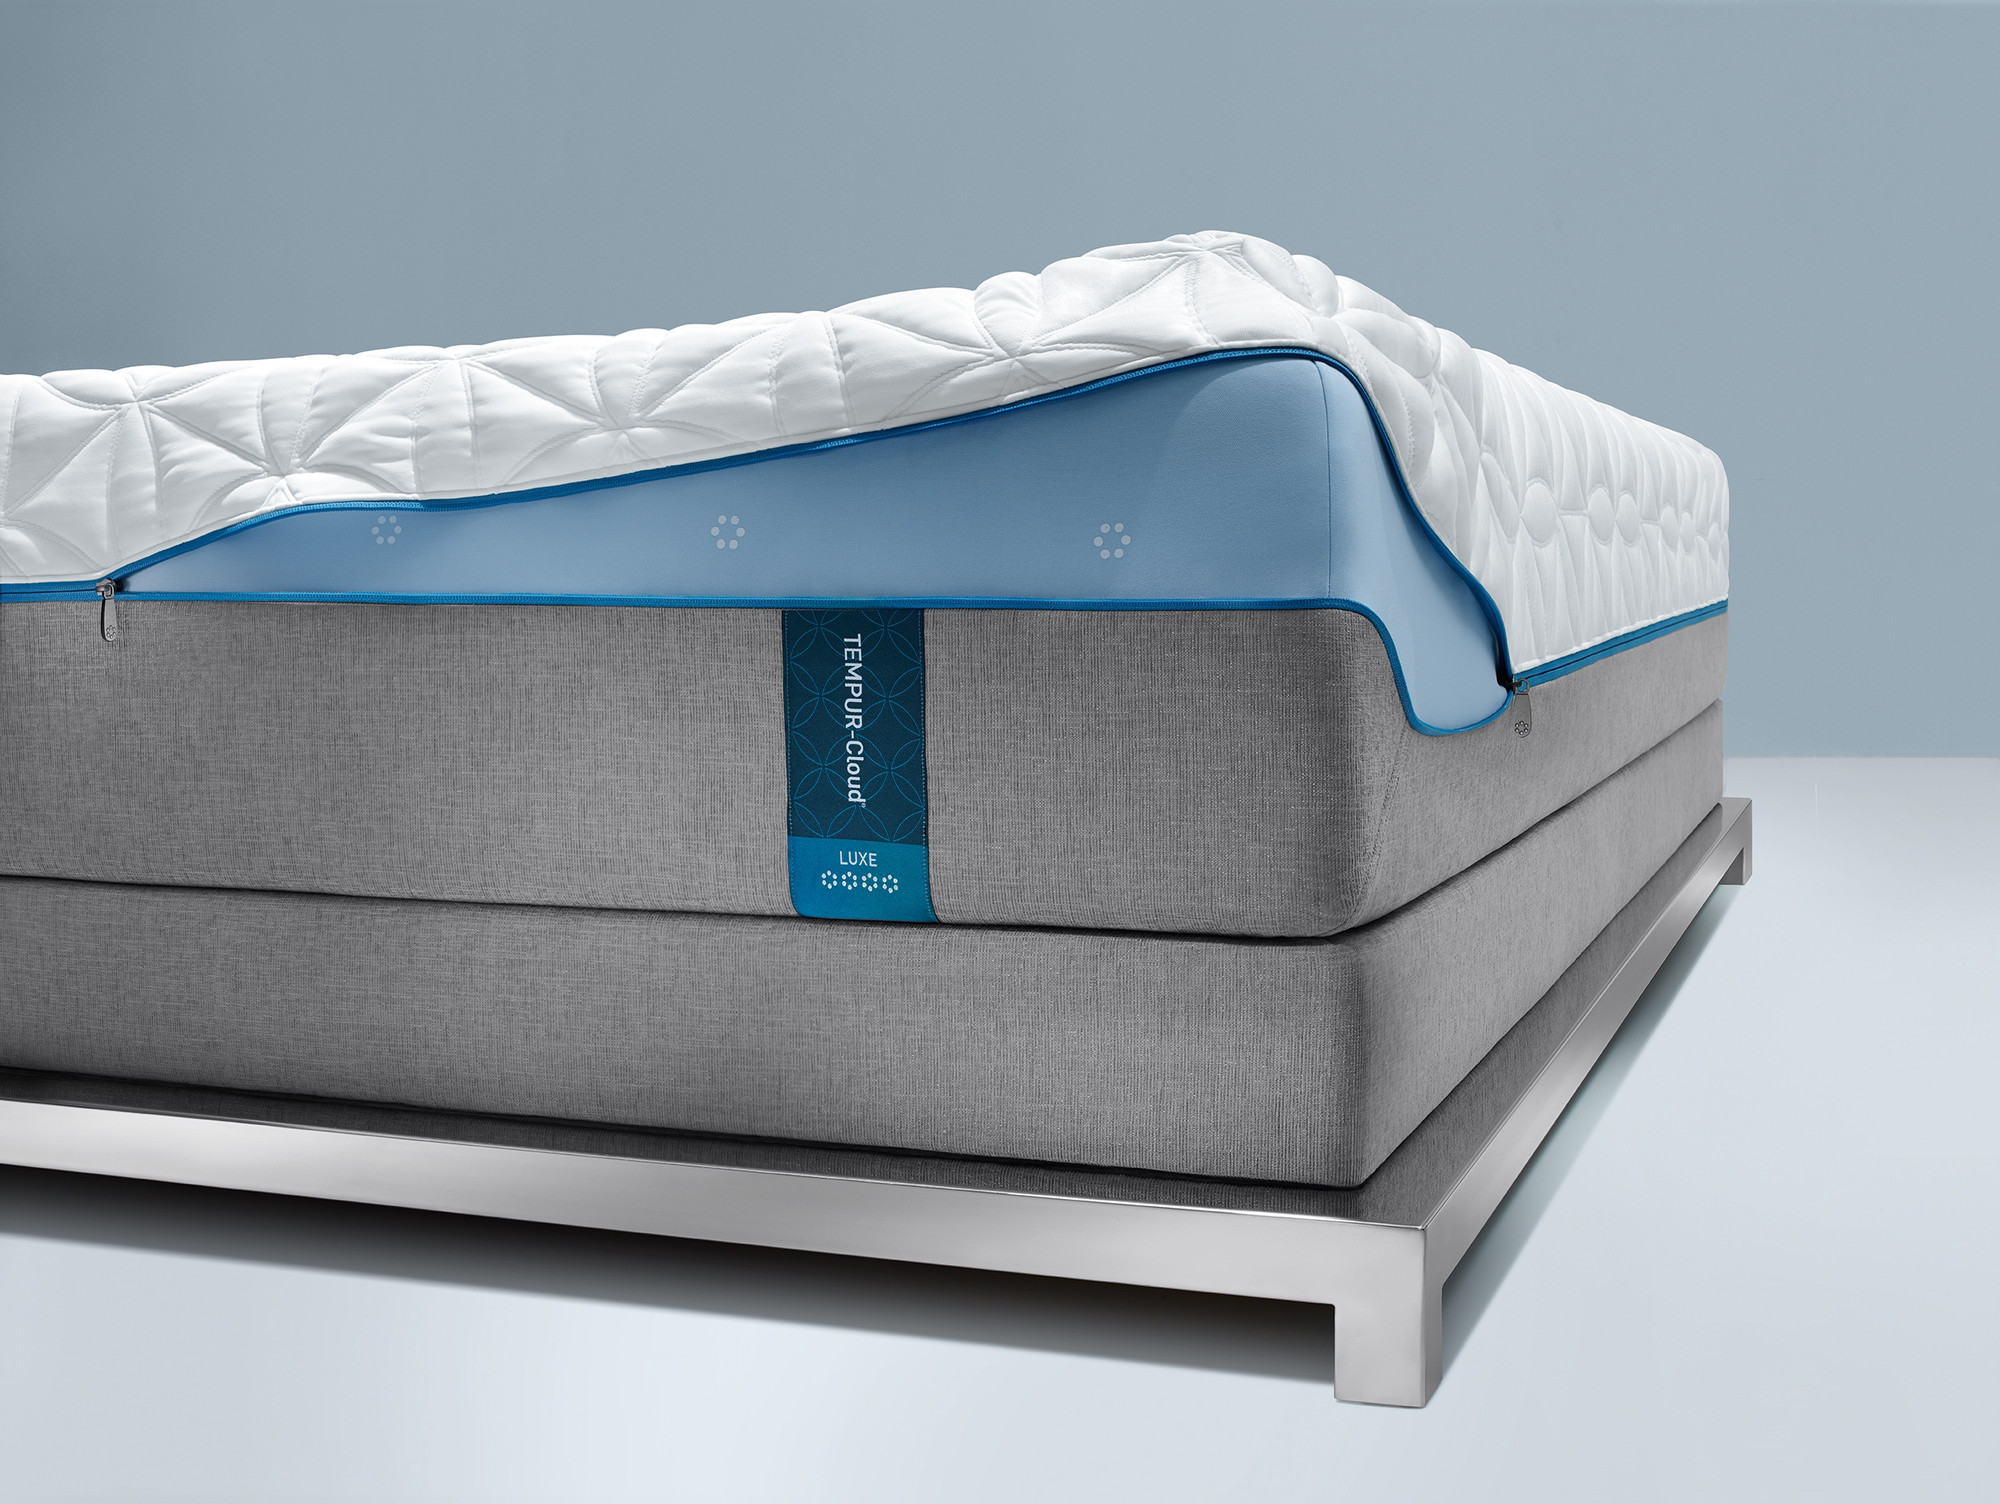 An illustration showing the Easy Refresh removable cover on the Tempur-Cloud Luxe mattress